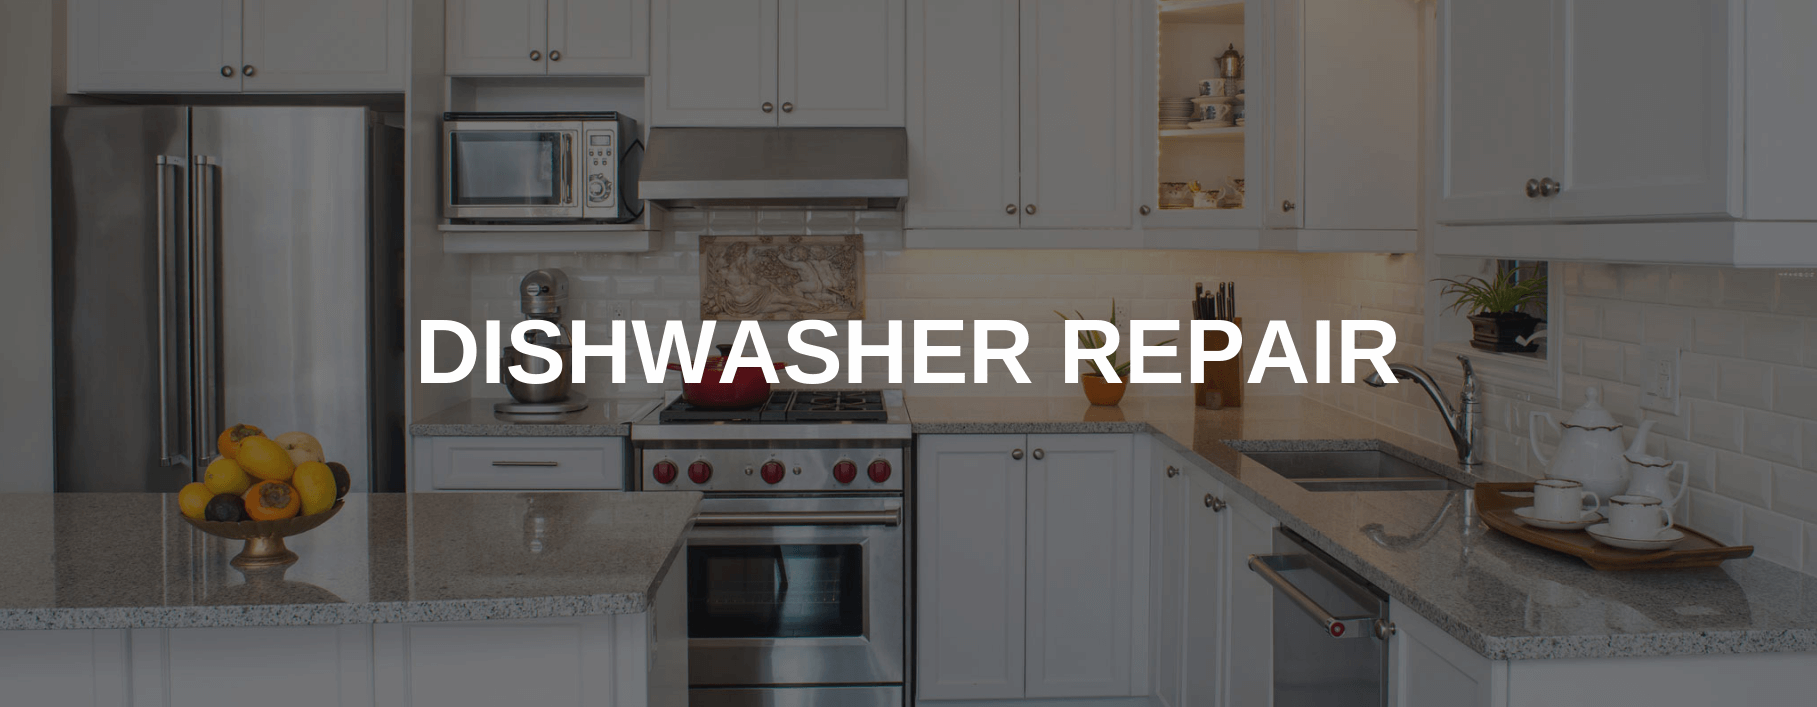 dishwasher repair moreno valley